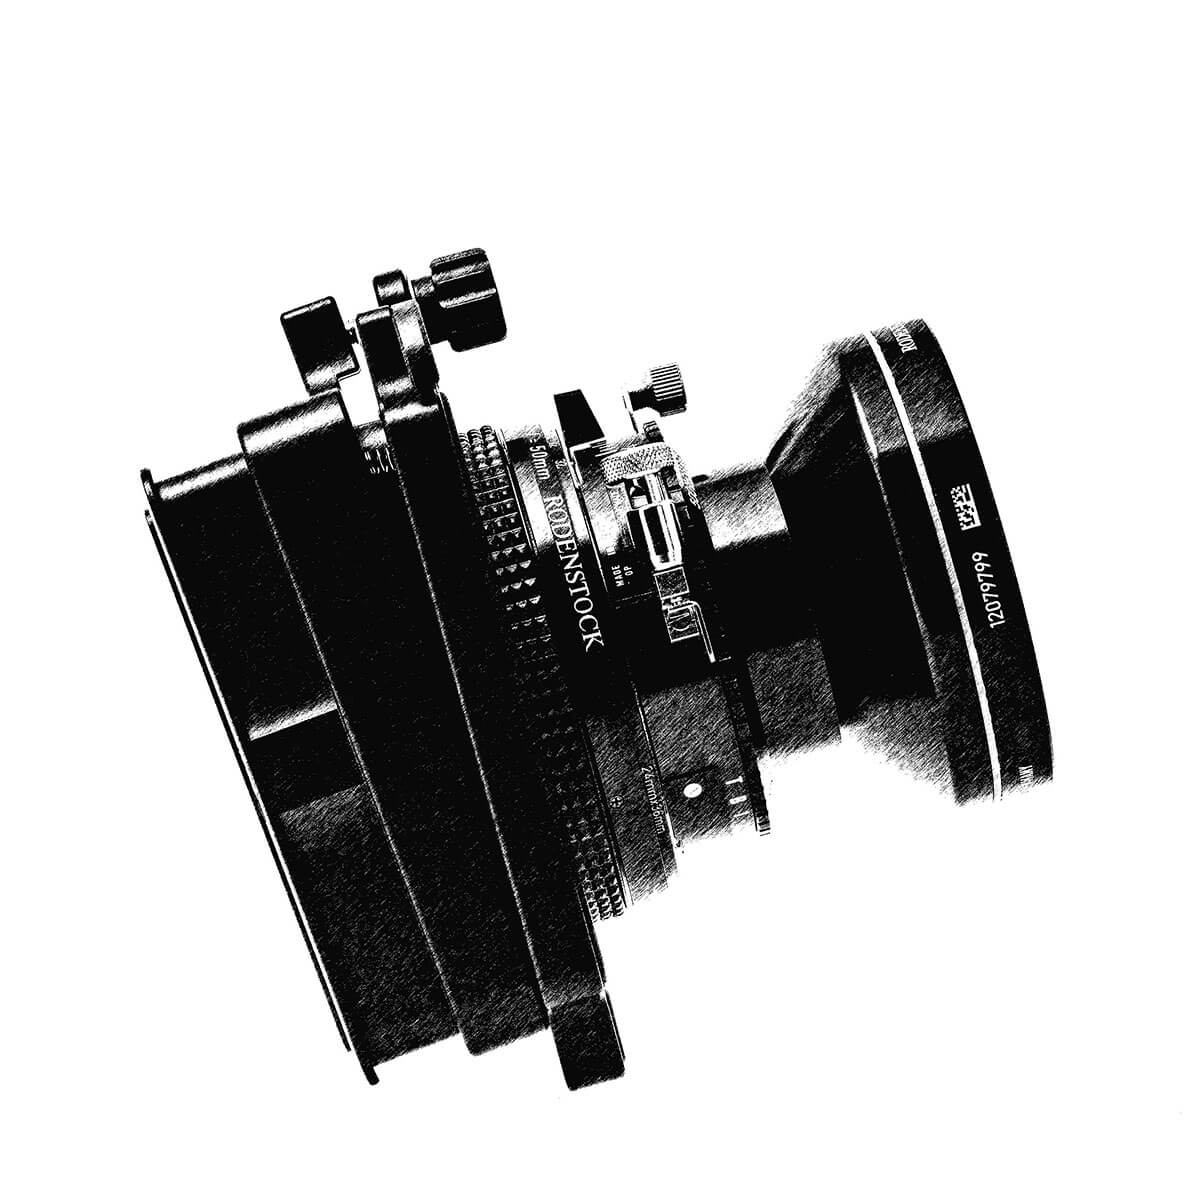 Parallel Shift and Scheimpflug Lens Tilt